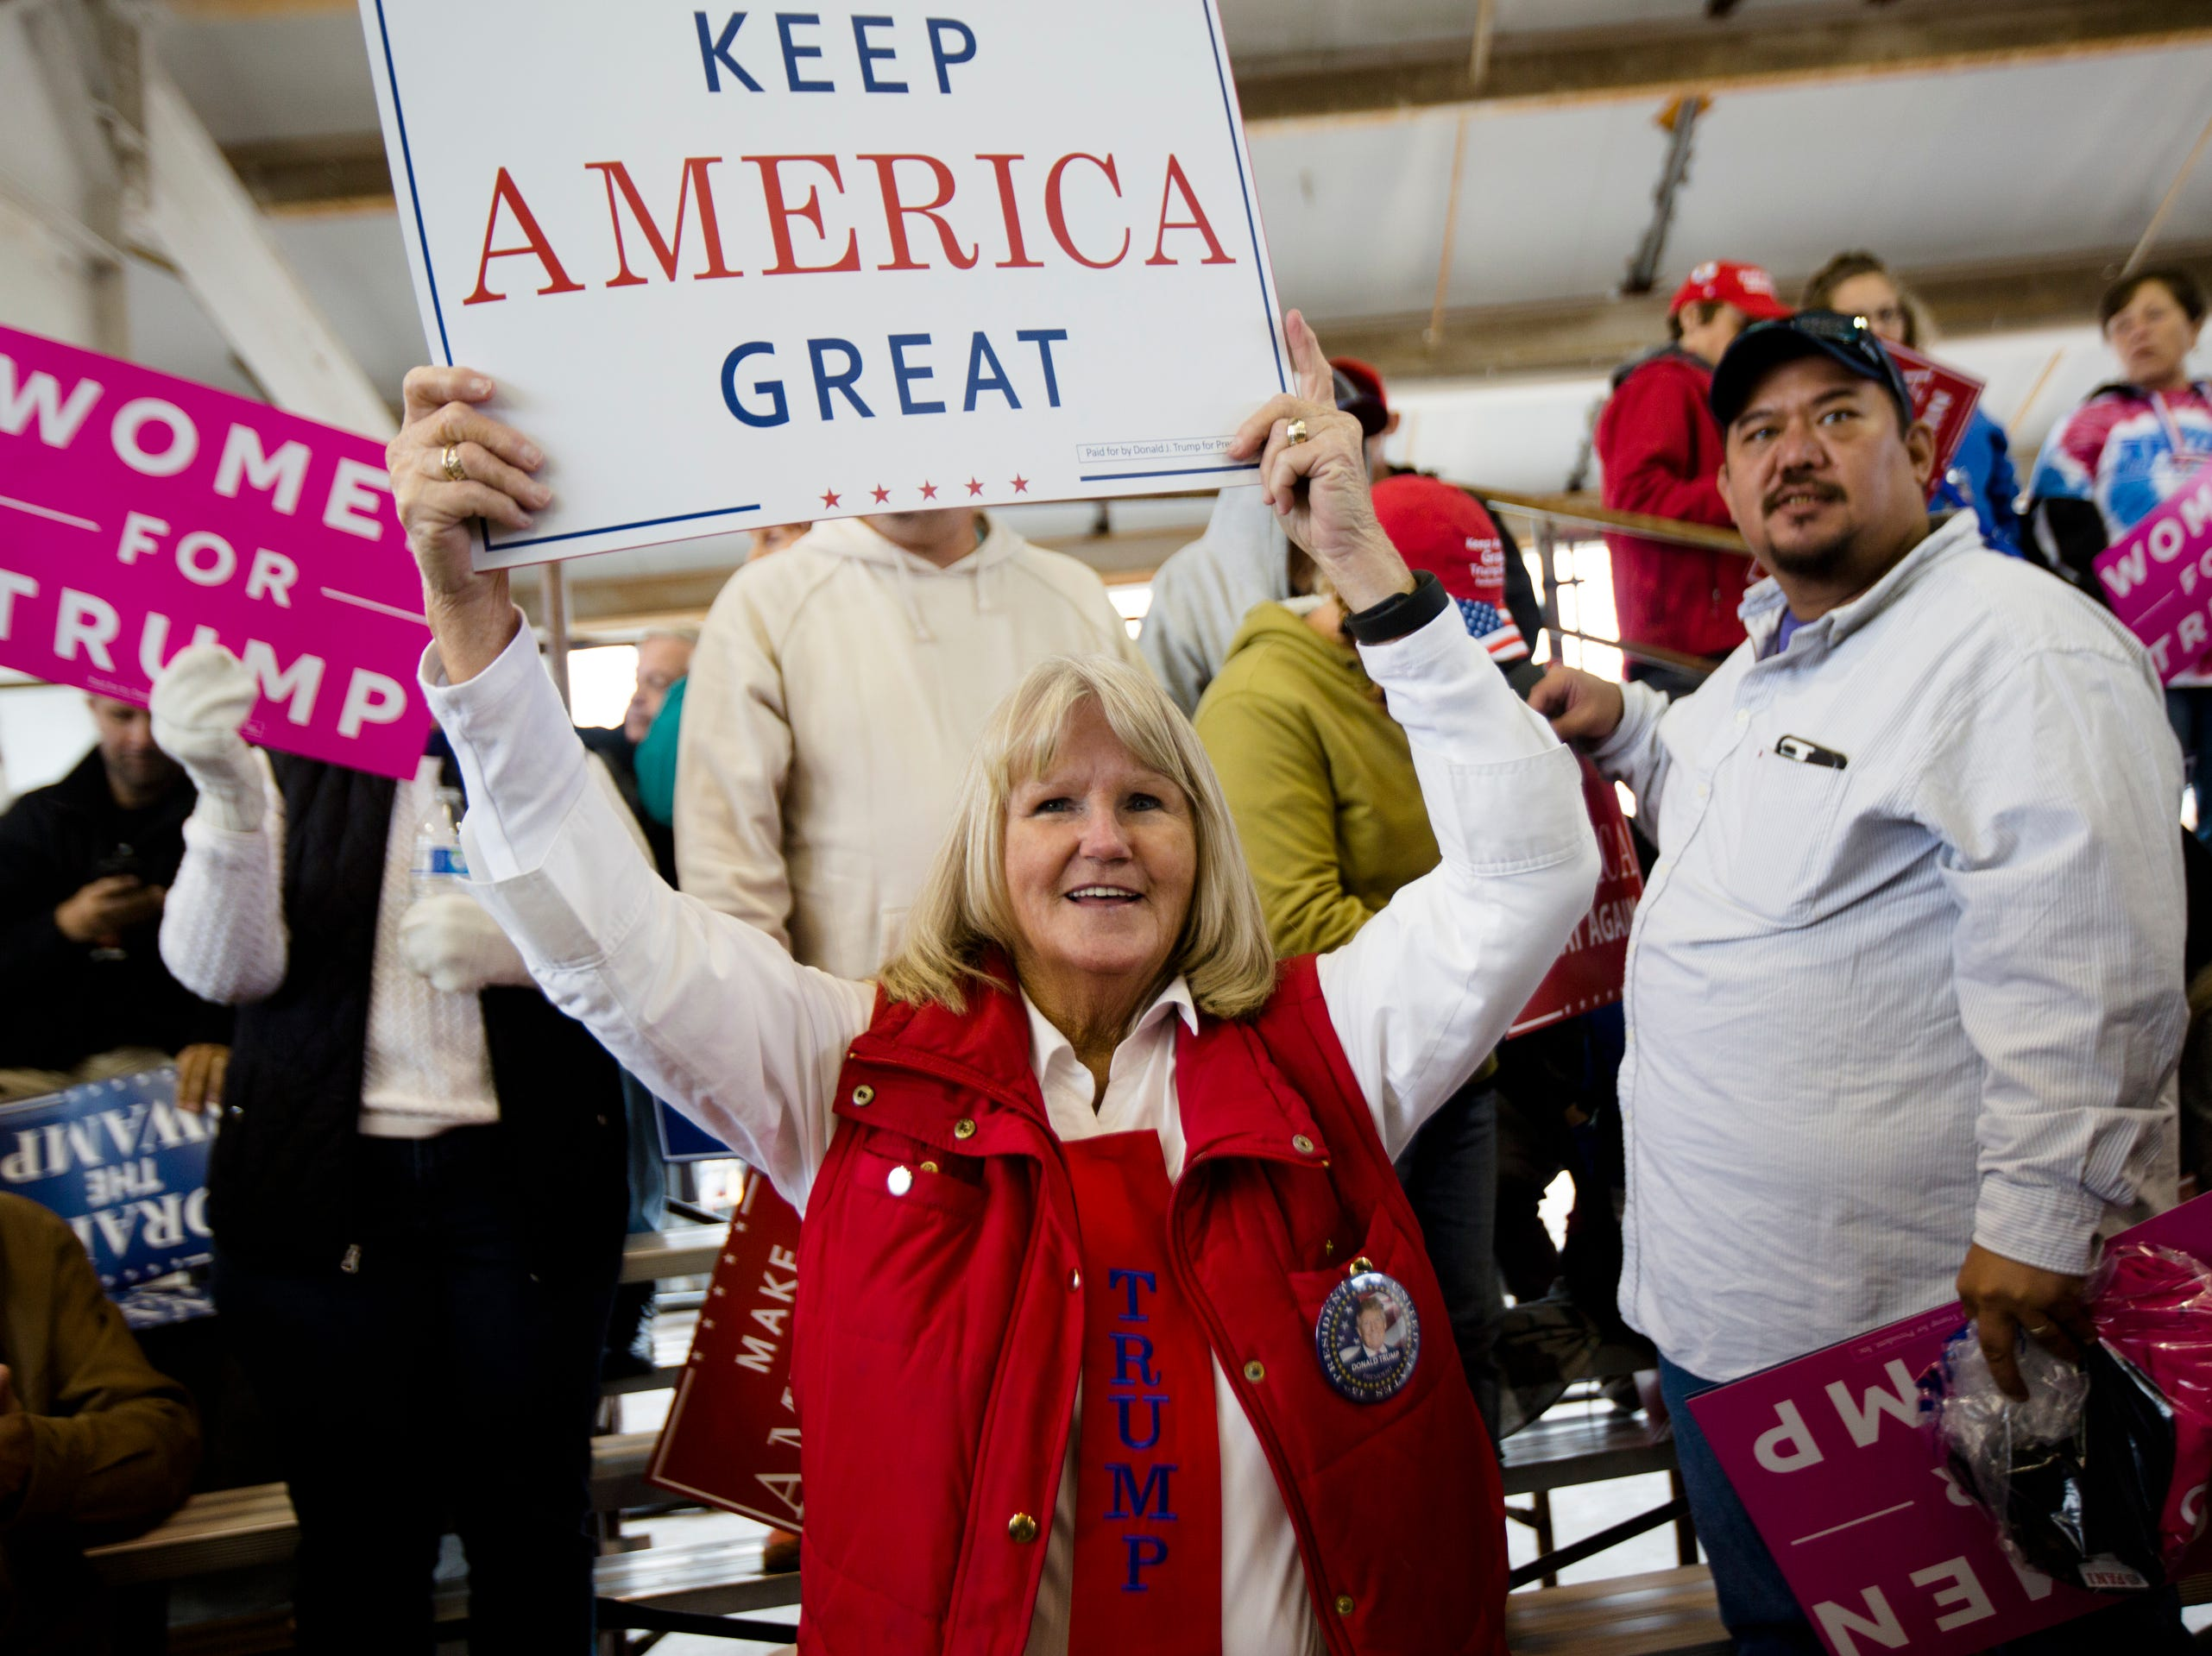 Carol Blasingame, of Cincinnati, waives a sign while waiting for the President at during the Make America Great Again Rally, Friday.